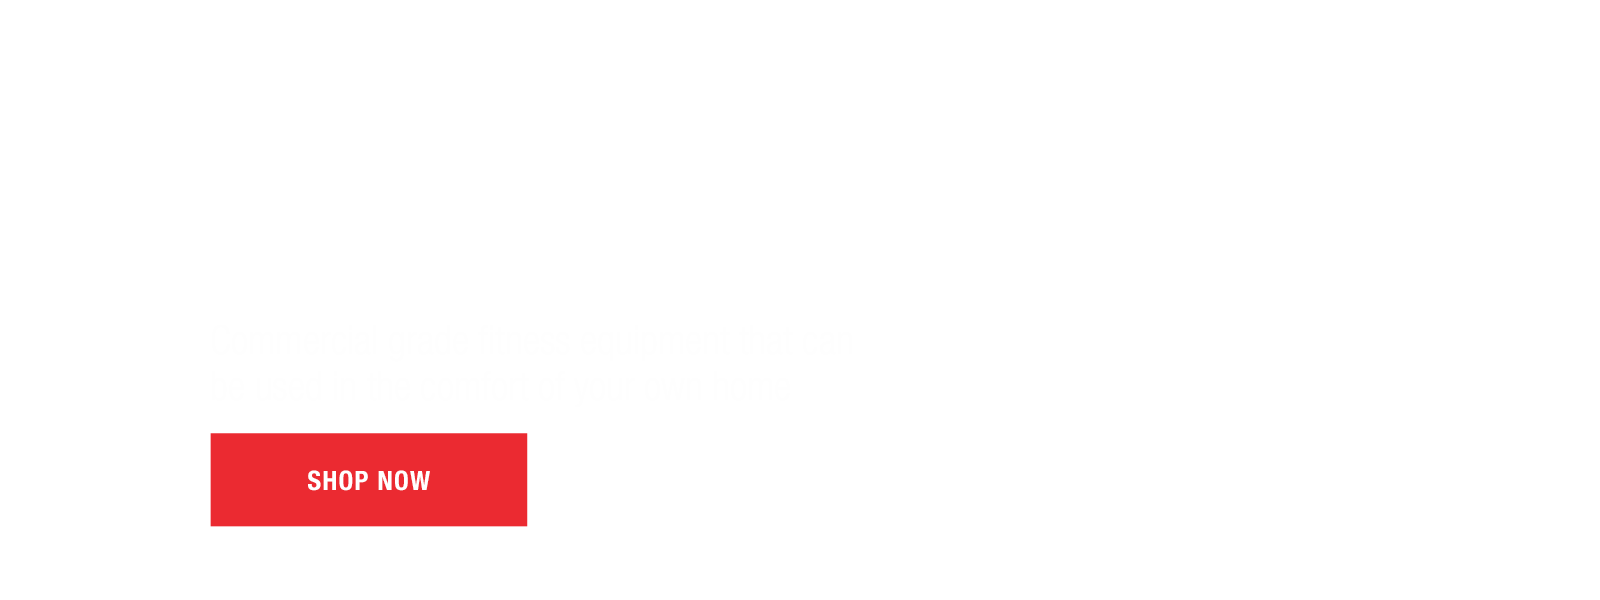 Shop home gym essentials